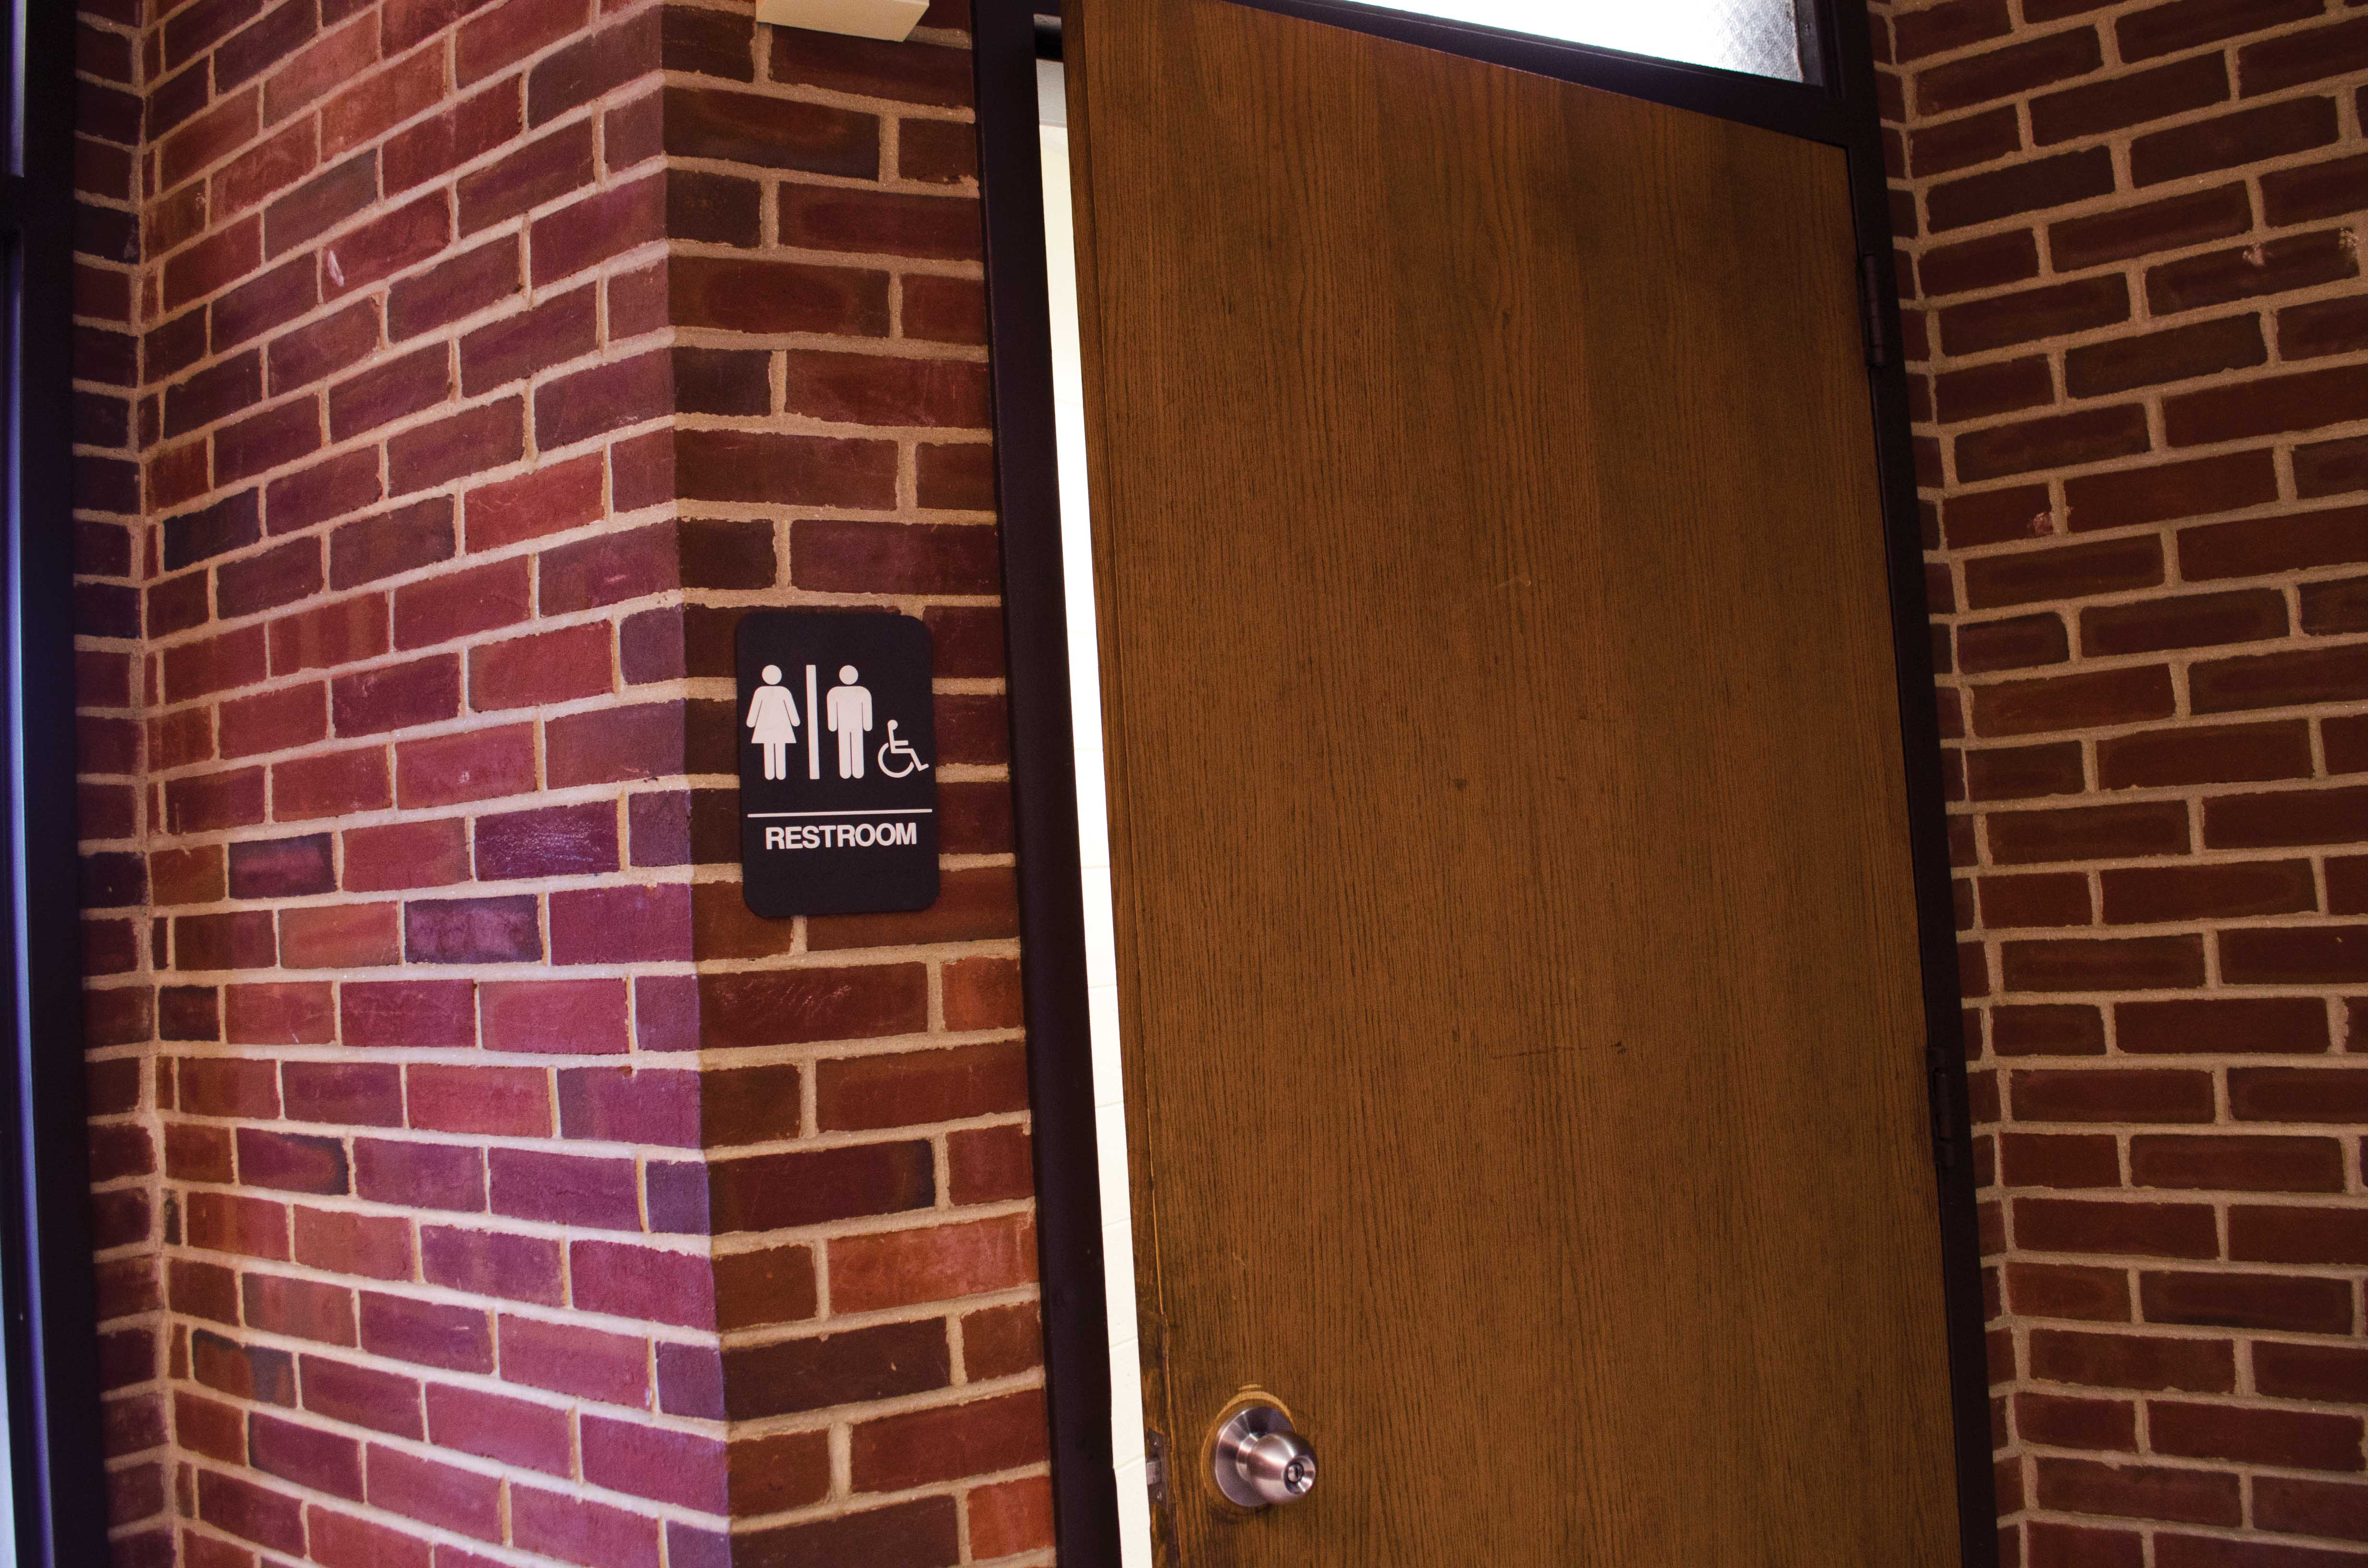 Gender Neutral bathroom located on 1st floor of Kaplan Hall (Samantha Mathewson/Charger Bulletin Photo)